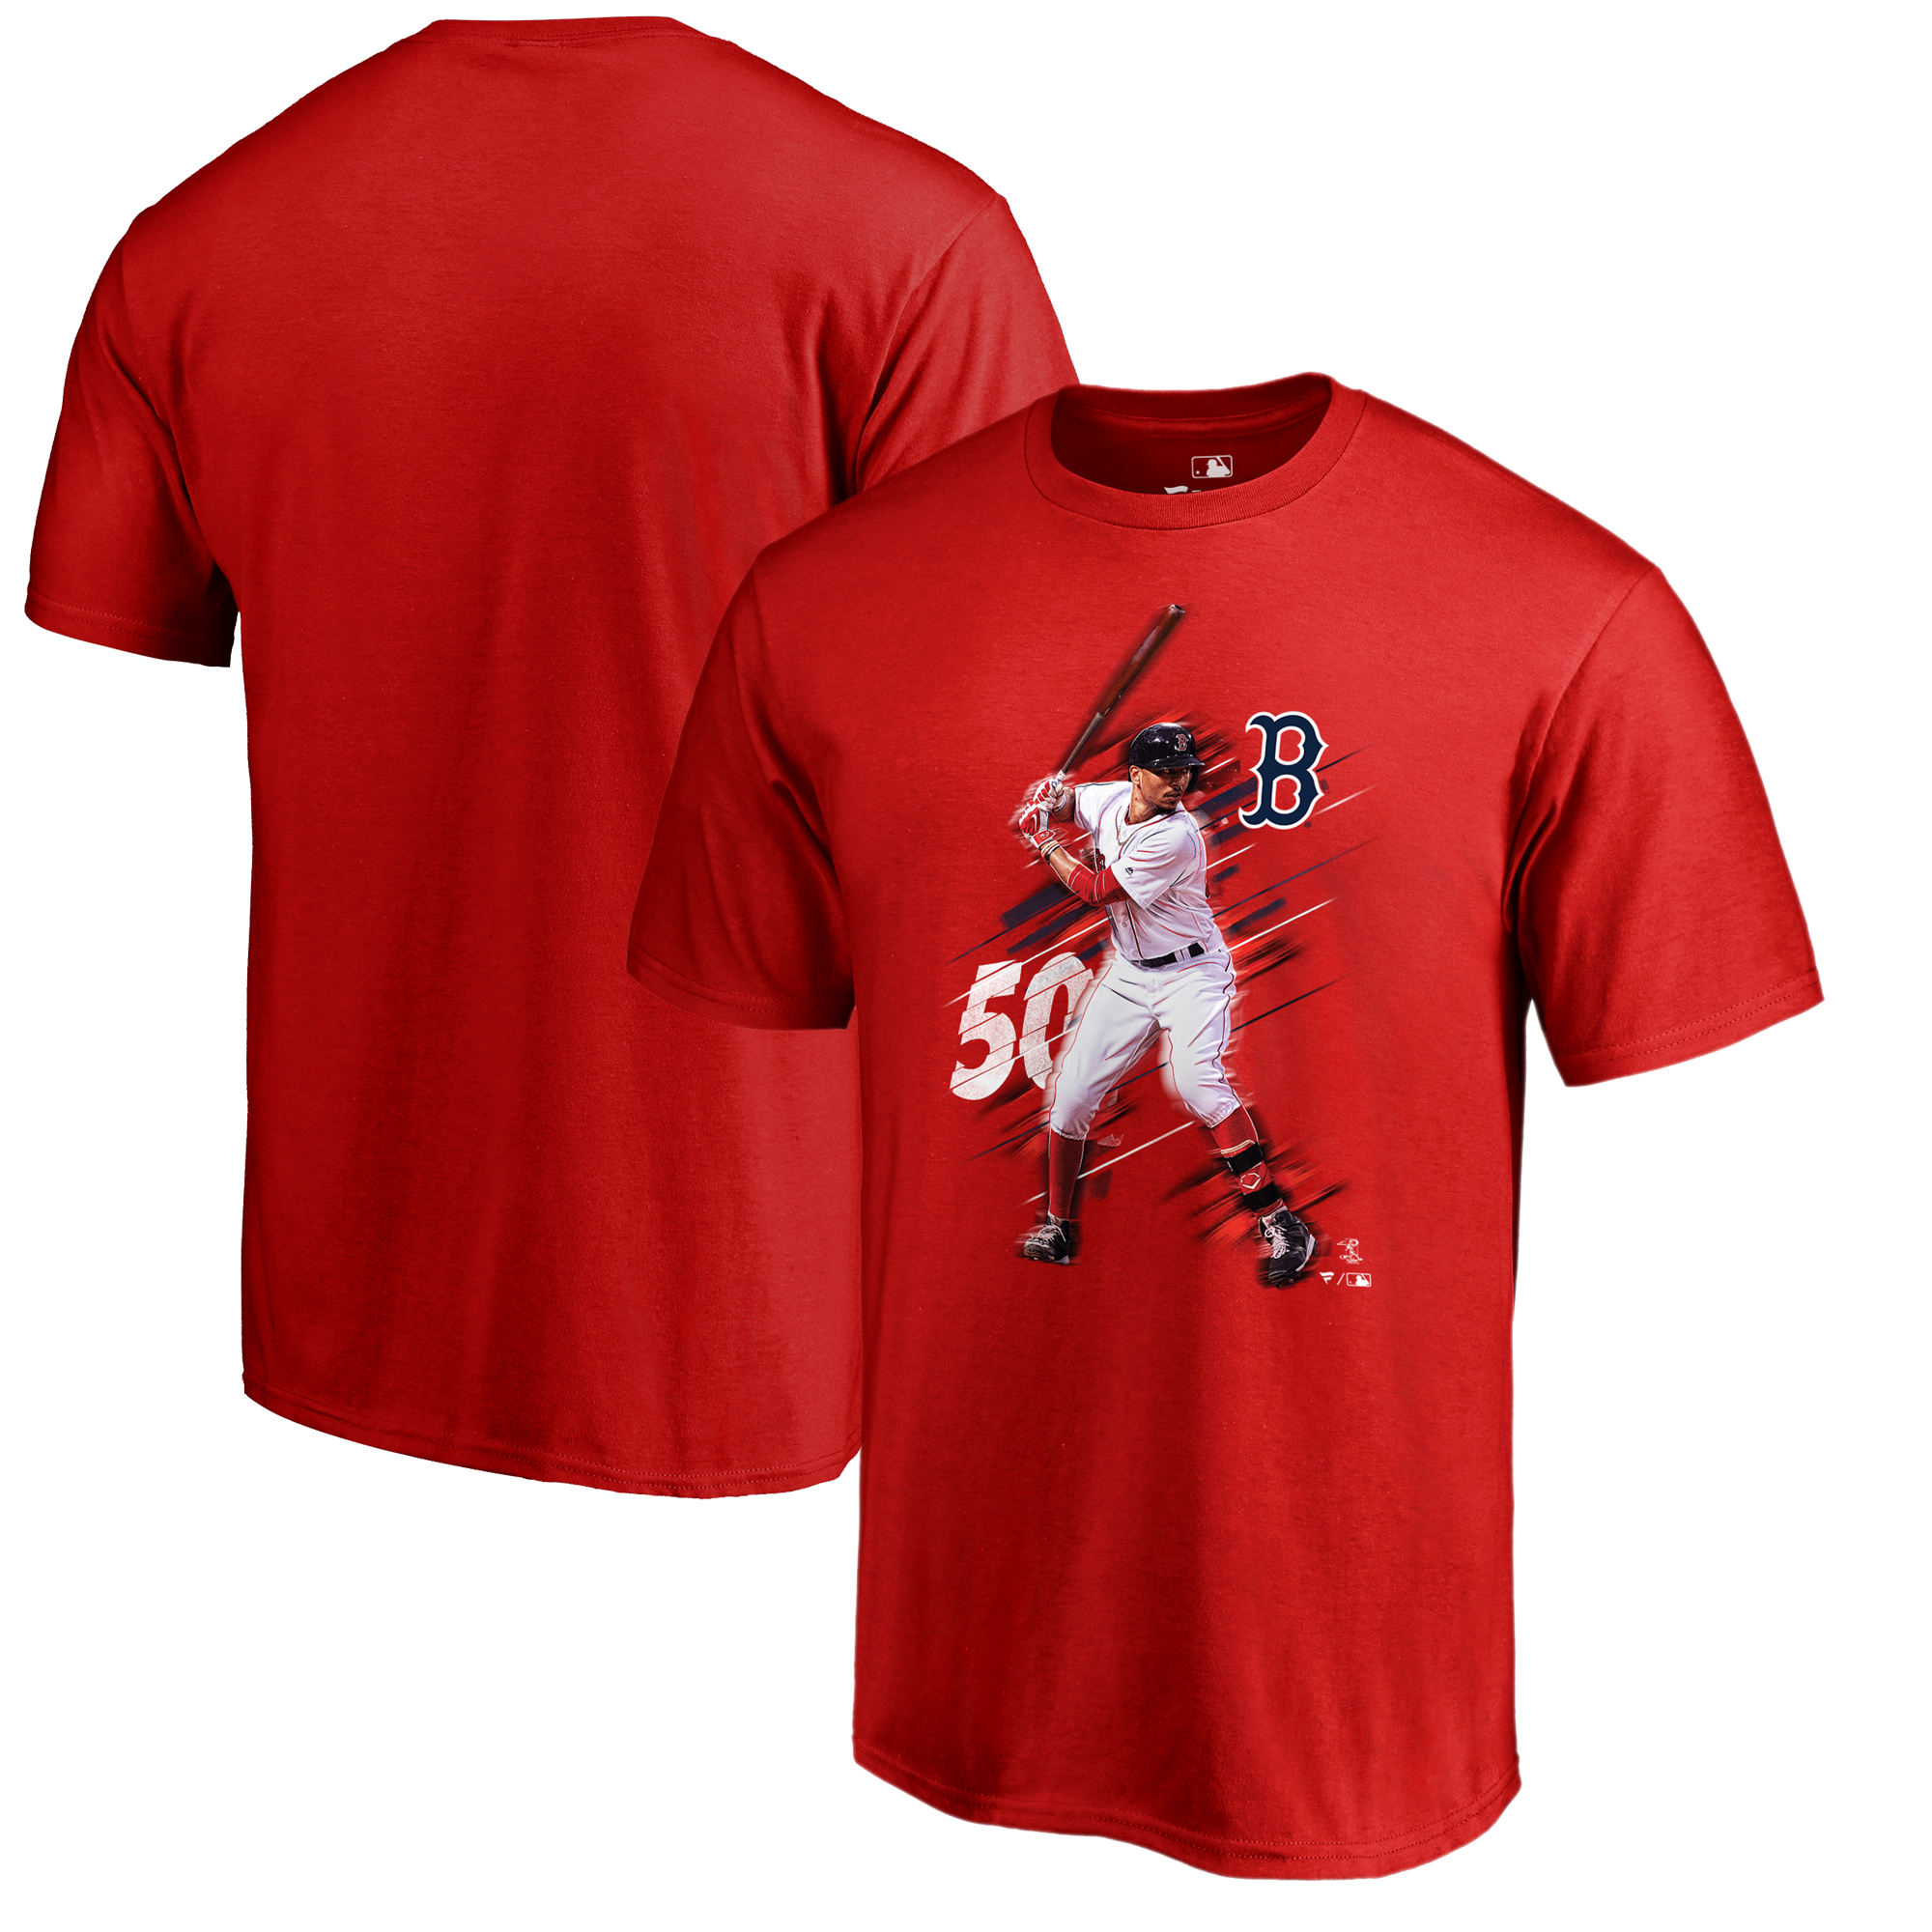 Mookie Betts Boston Red Sox Fanatics Branded Fade Away T-Shirt - Red